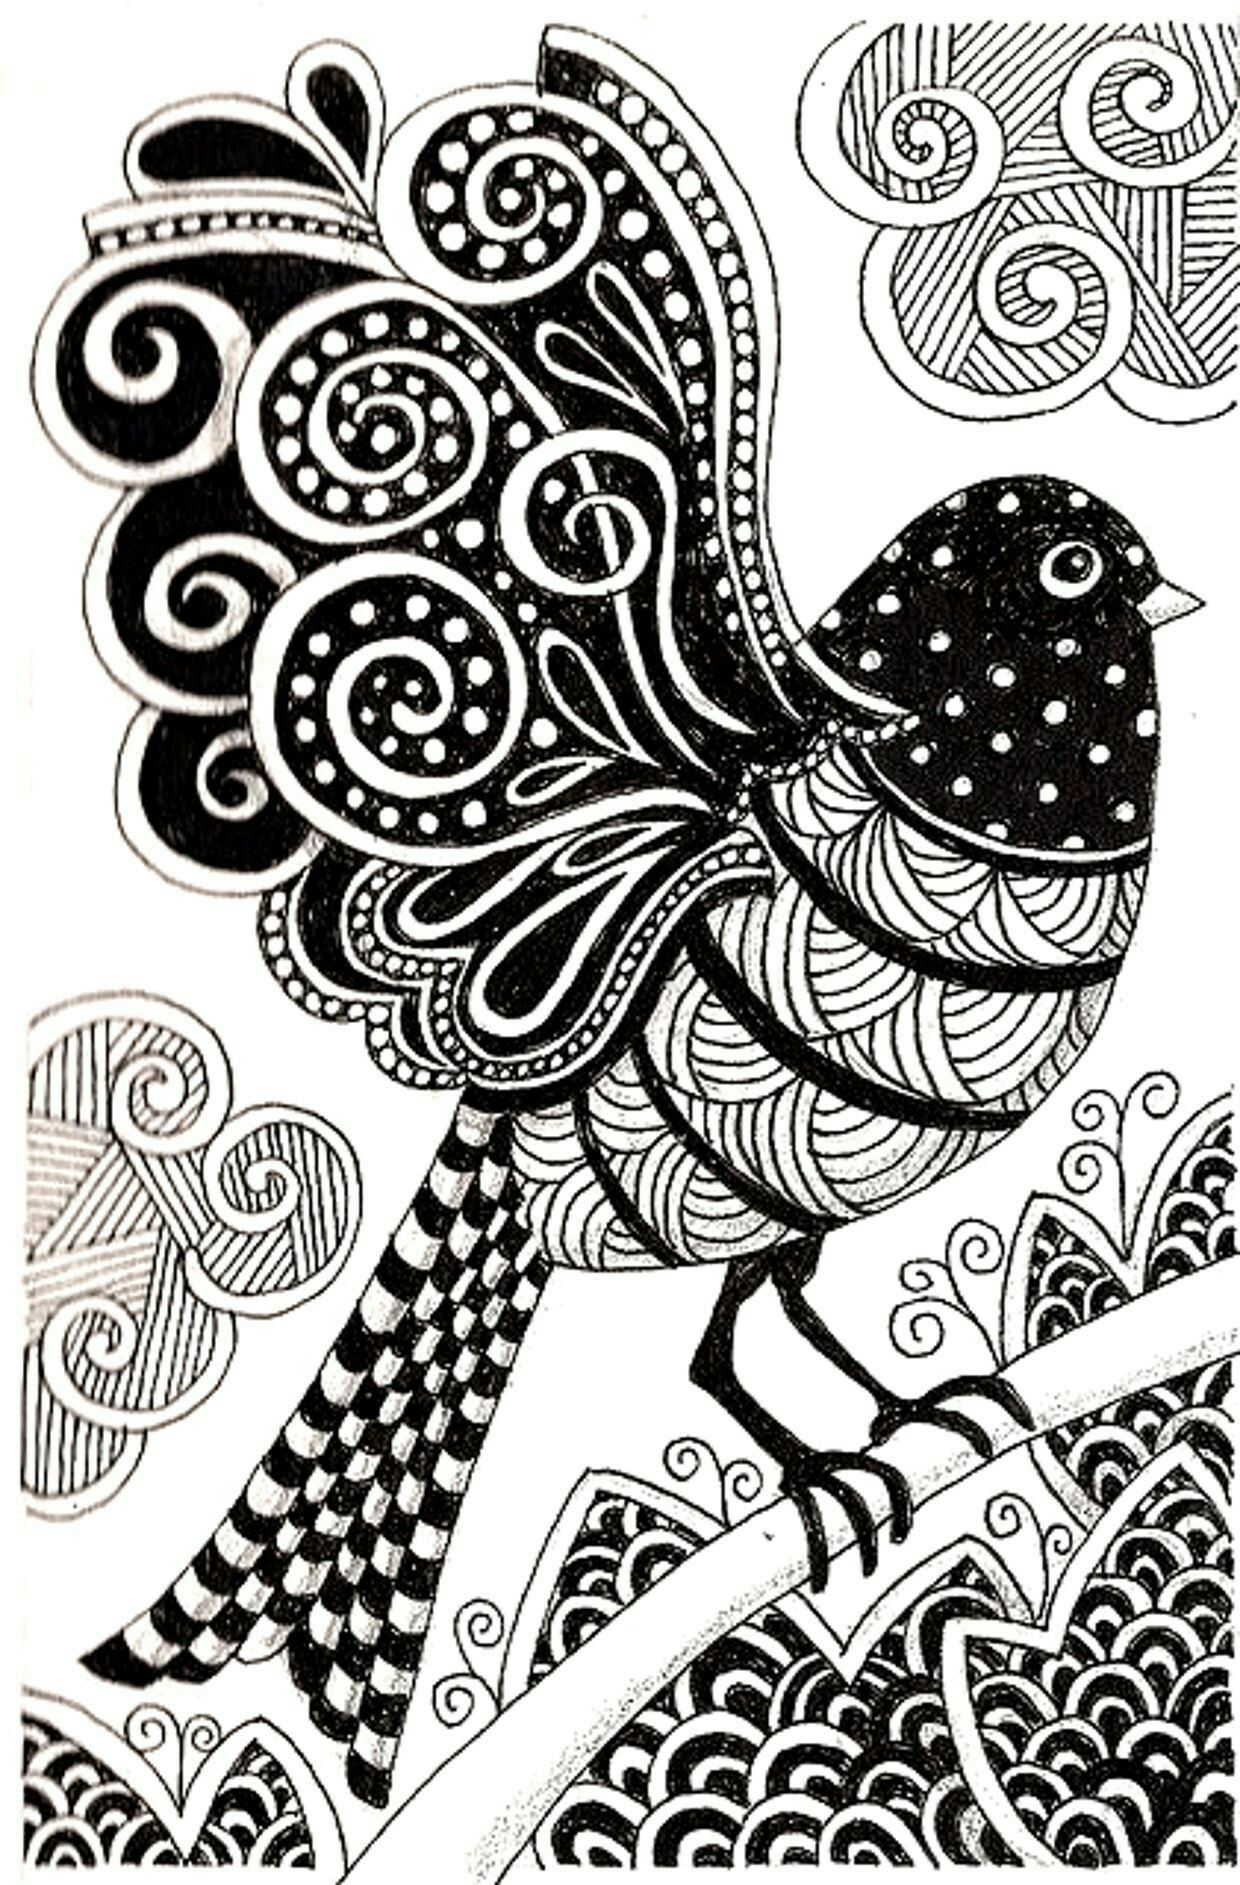 Pin by Shel Young on Zentangle | Pinterest | Template